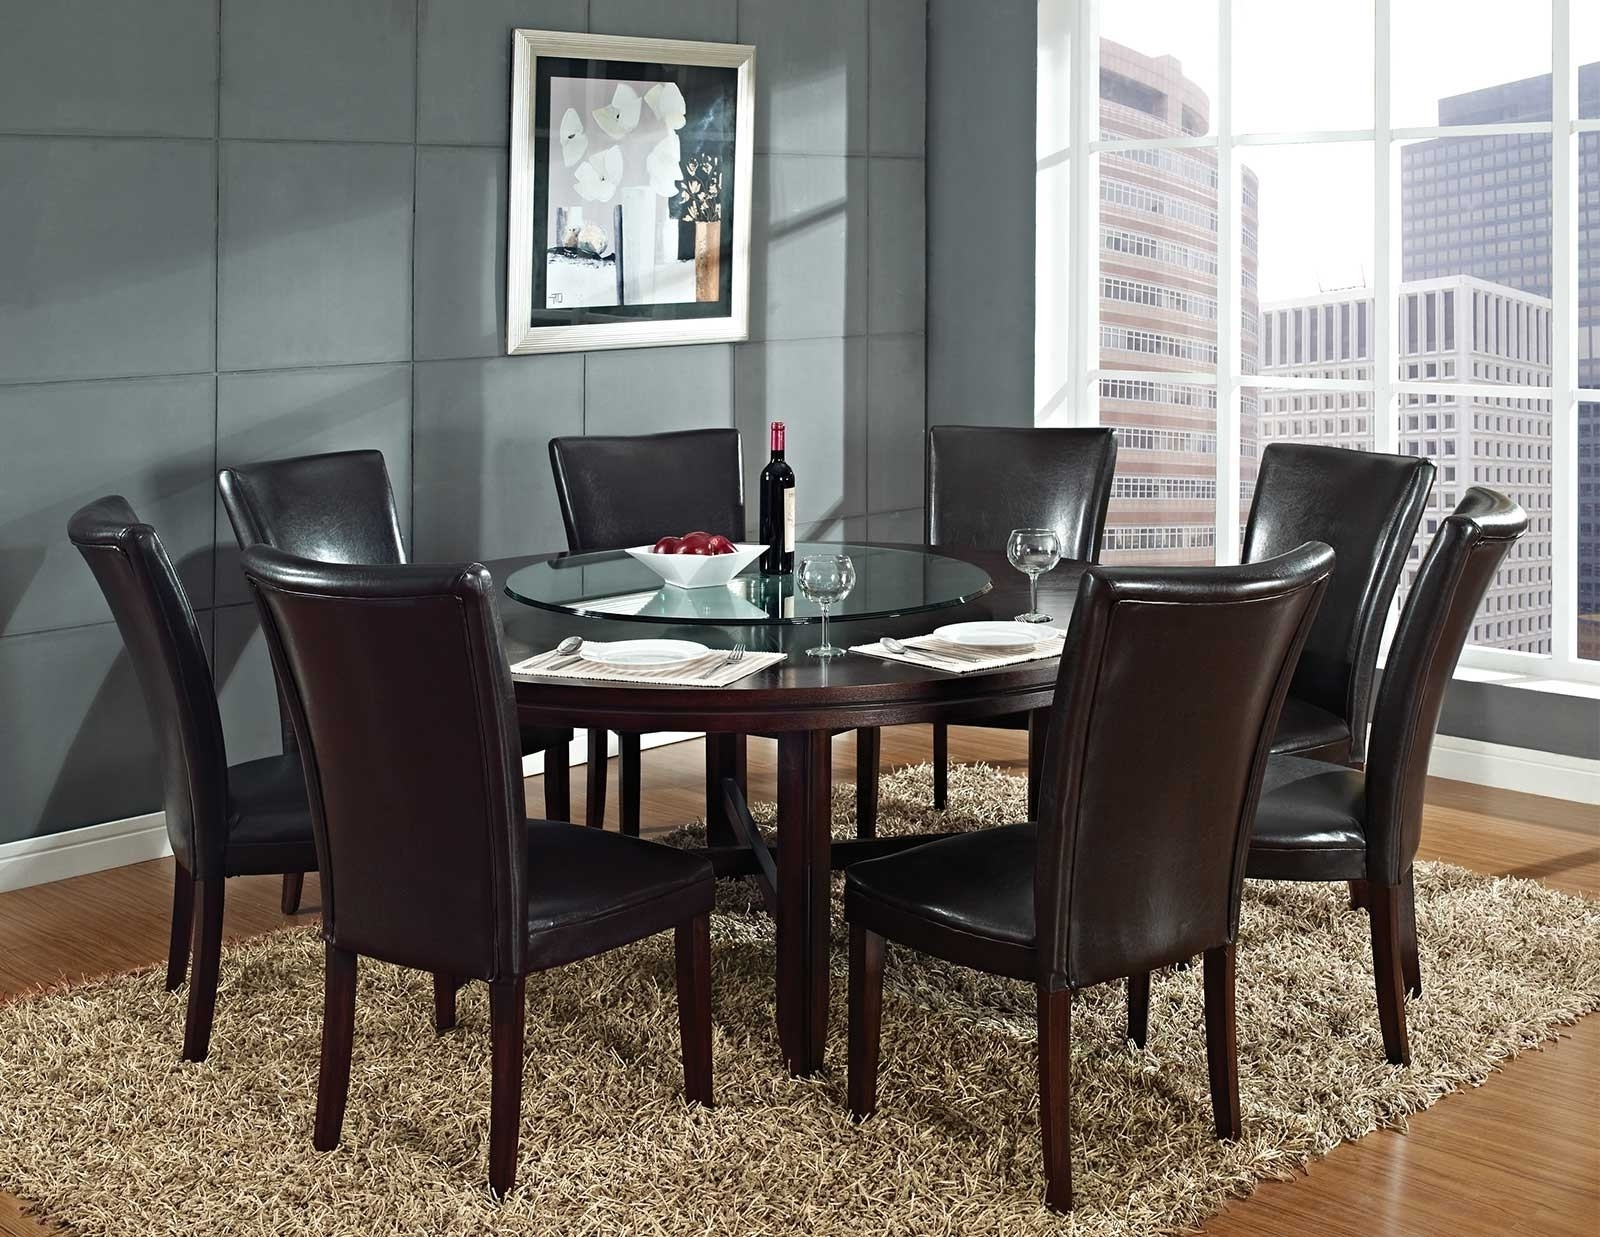 Best And Newest Dining Tables: Glamorous Large Round Dining Table Seats 6 6 Person Inside 6 Seat Round Dining Tables (Gallery 8 of 25)